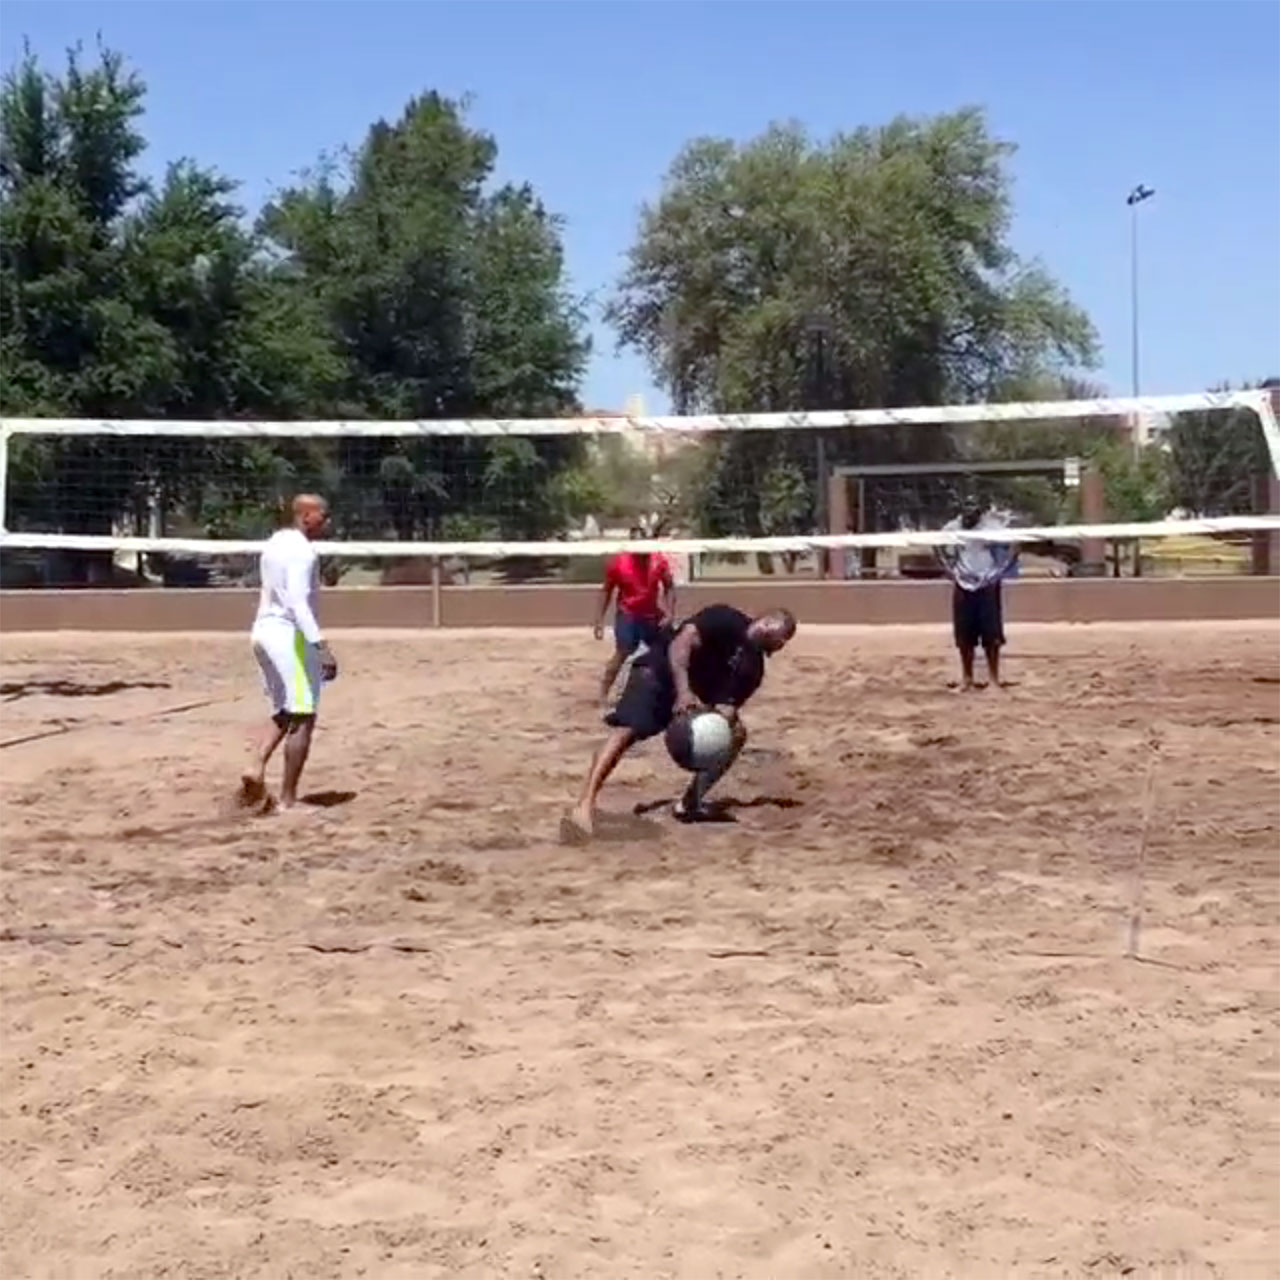 Pittsburgh Steelers' James Harrison, Ryan Shazier, Vince Williams And Robert Golden play Hooverball in Arizona